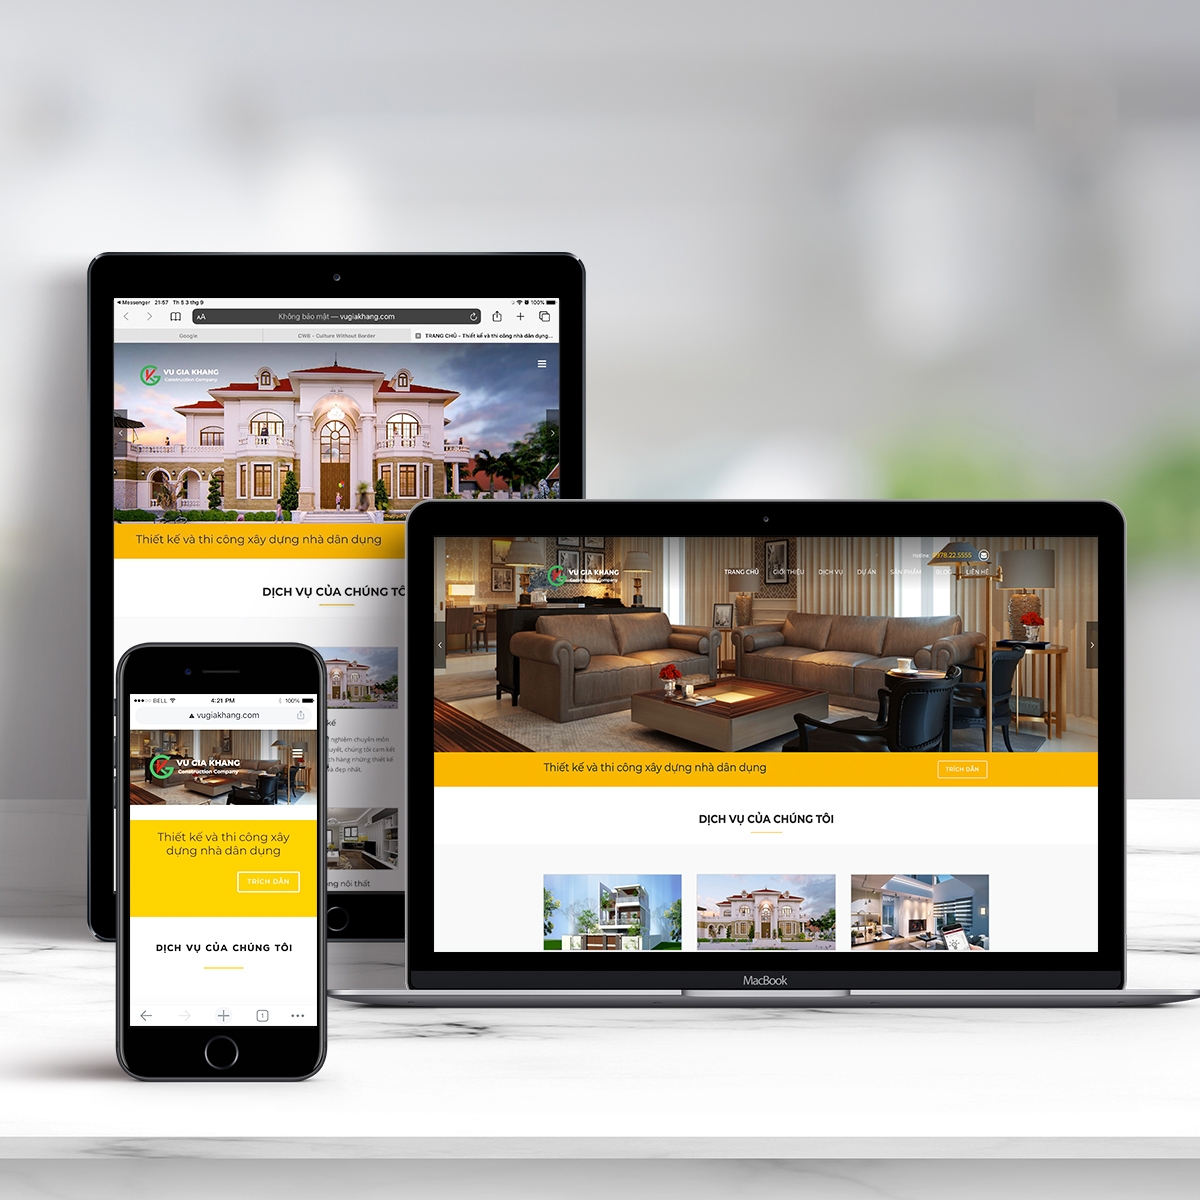 the vugiakhang website build by Uway Technology